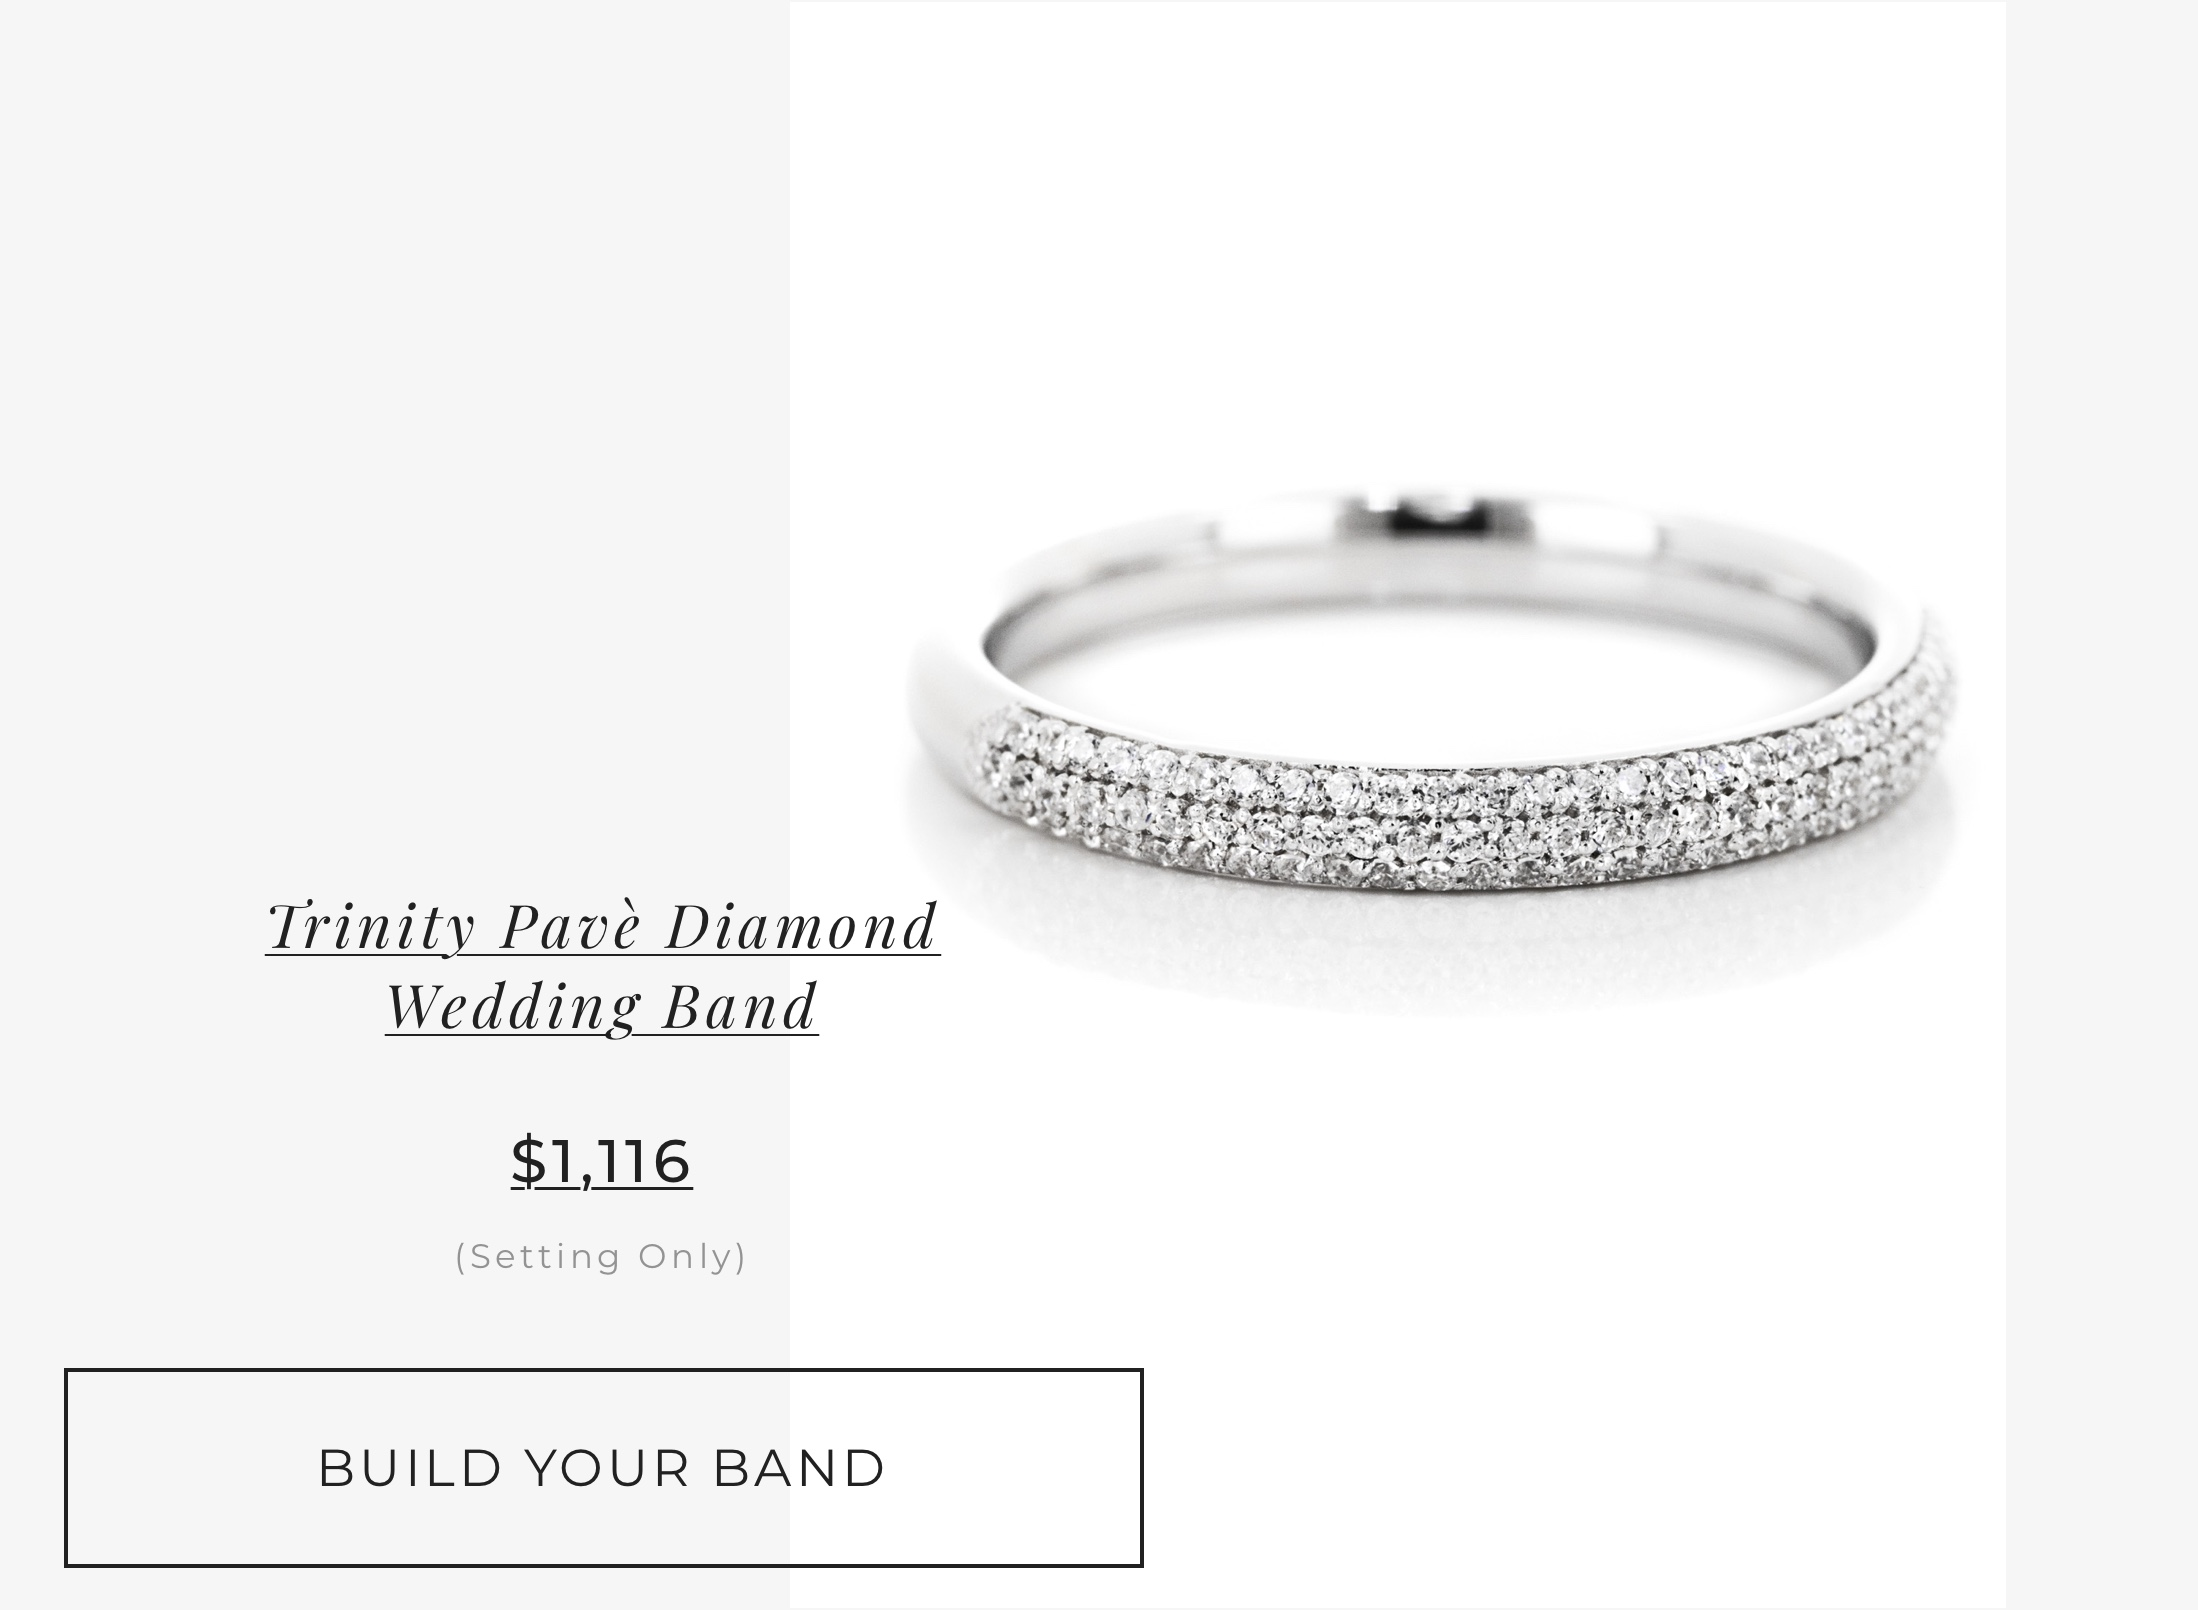 Trinity Pave' Wedding Band